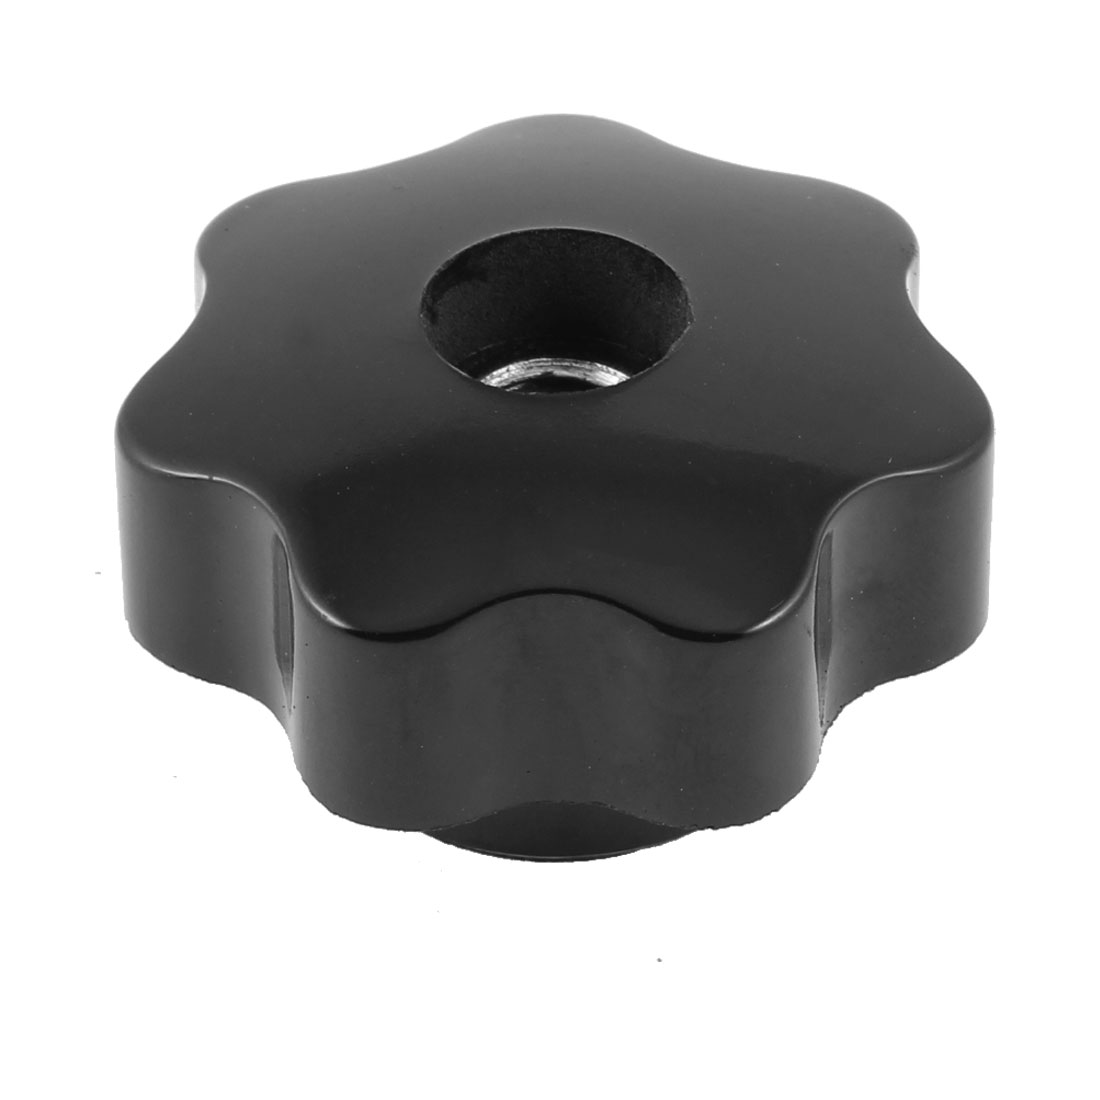 24mm Height 8mm Female Thread Diameter Black Star Knob